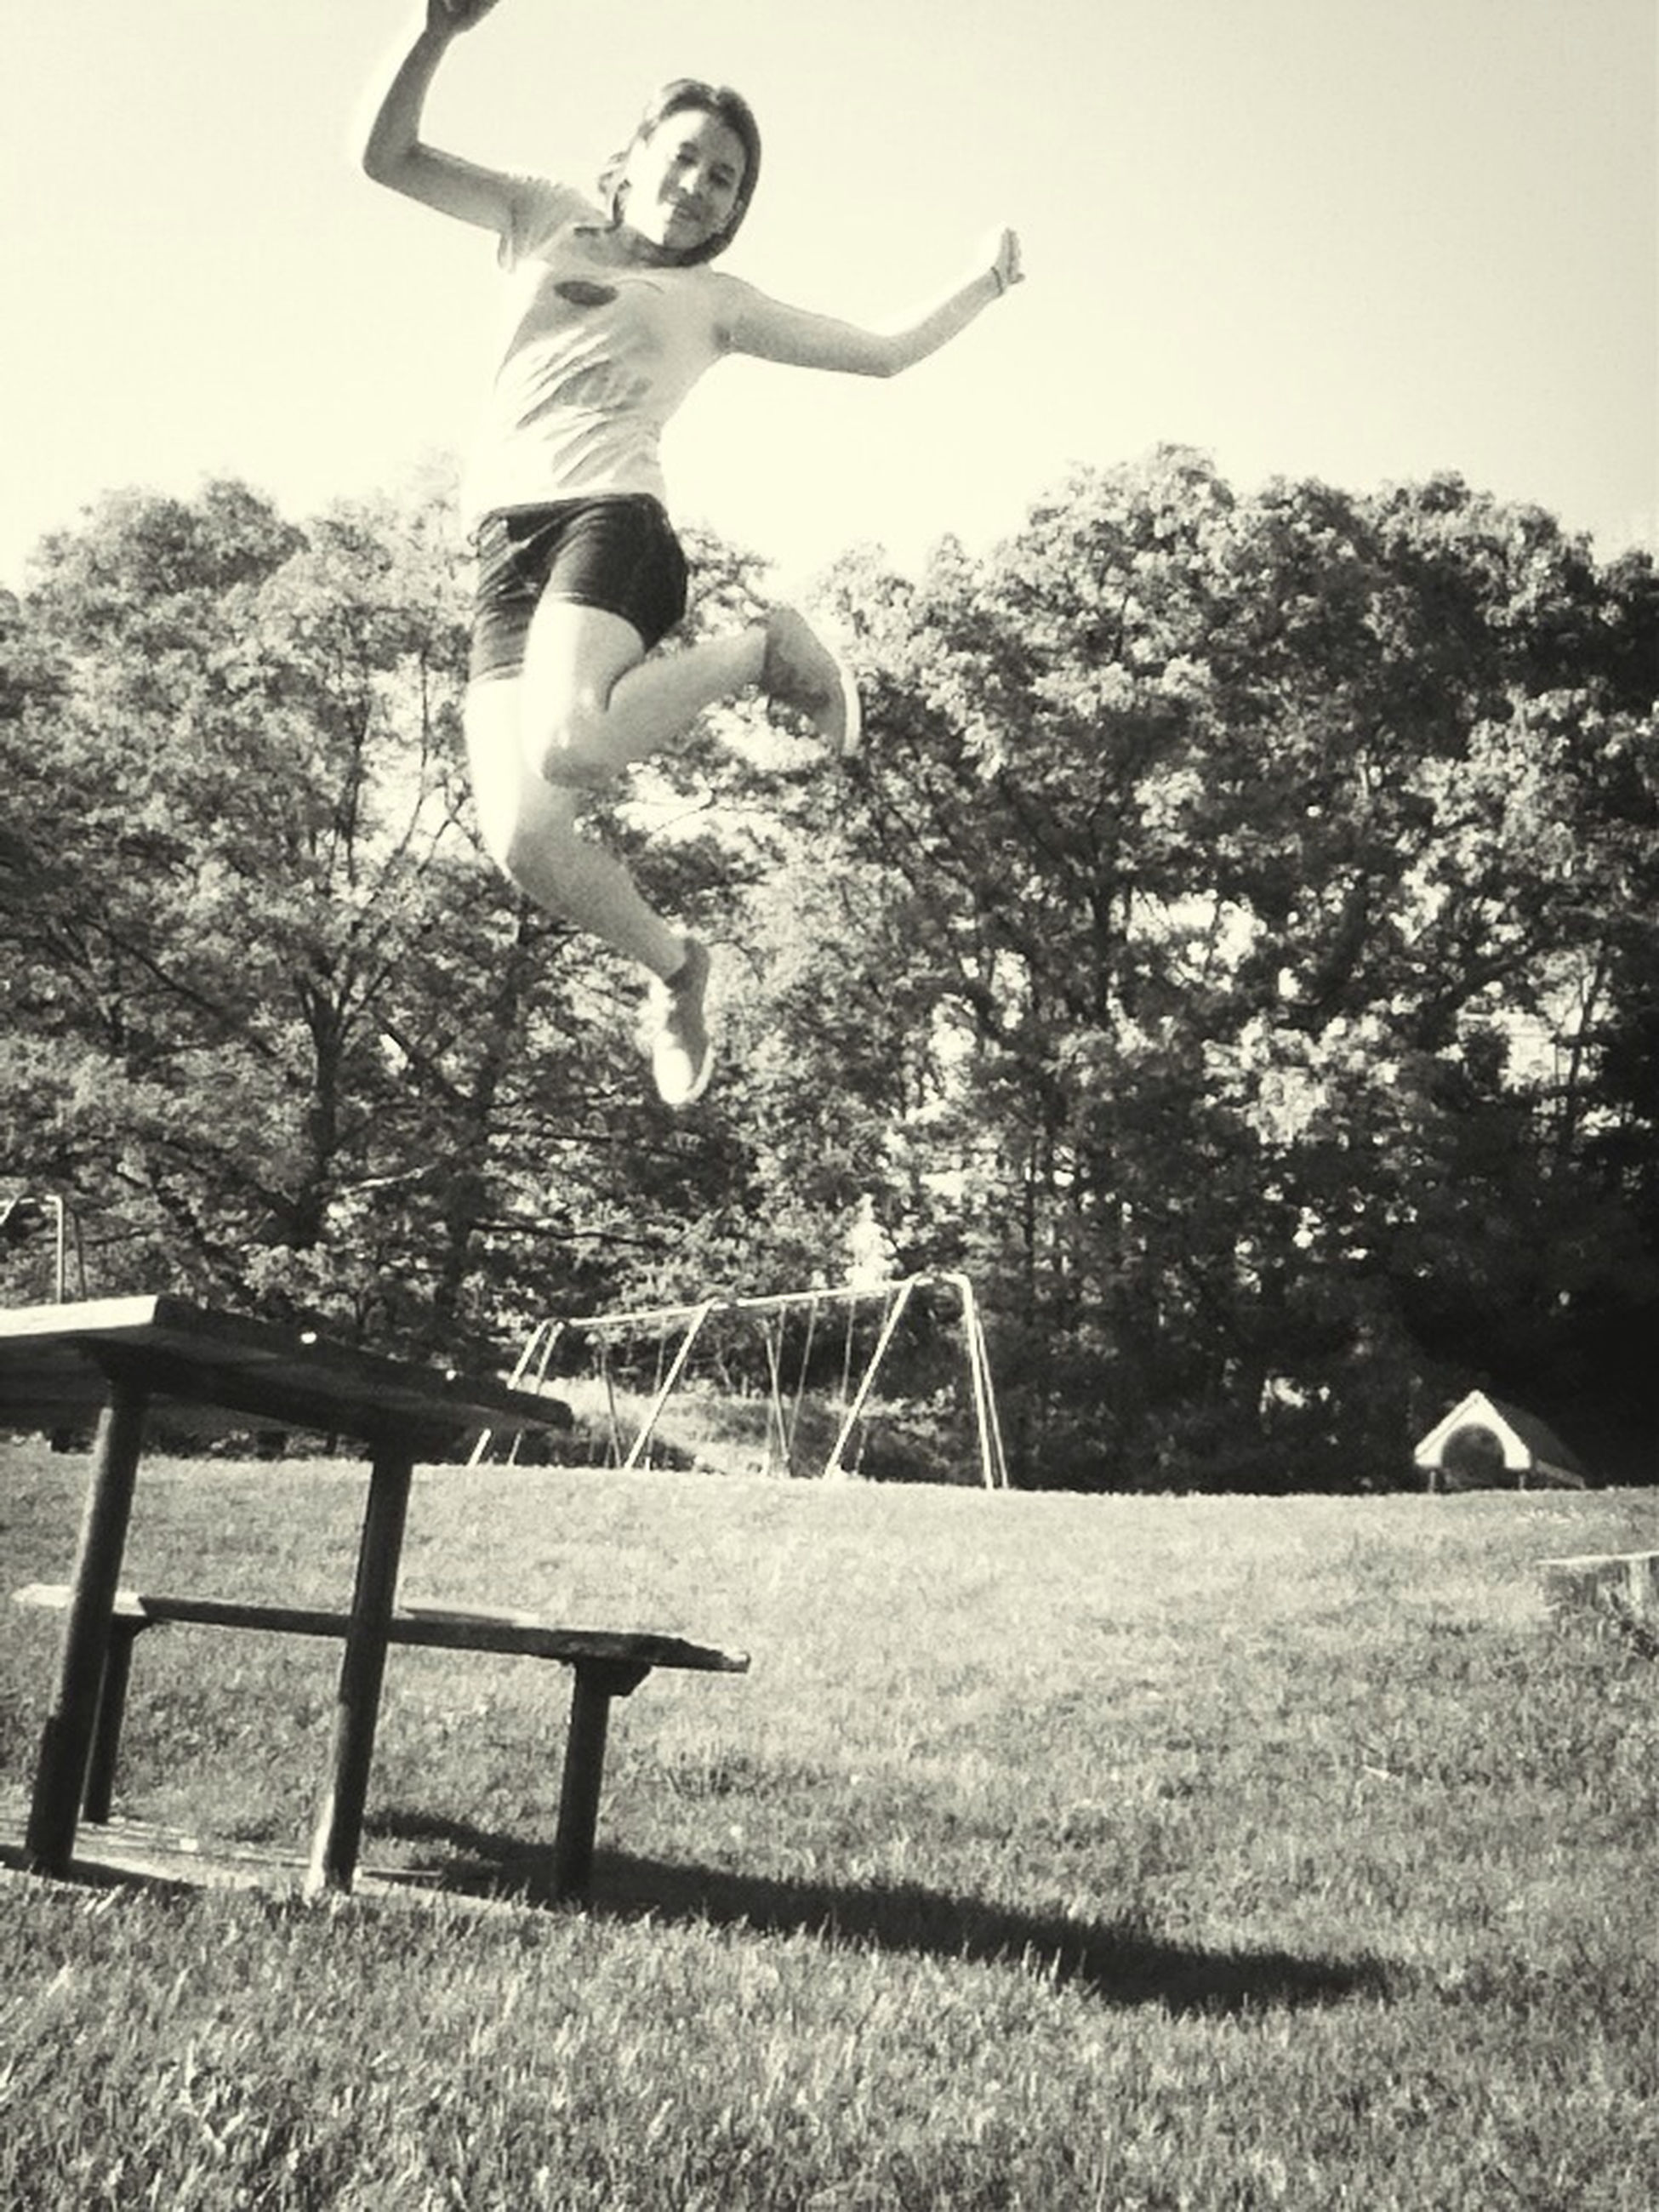 lifestyles, leisure activity, tree, full length, mid-air, childhood, jumping, casual clothing, person, fun, young adult, sport, enjoyment, sunlight, grass, park - man made space, skill, field